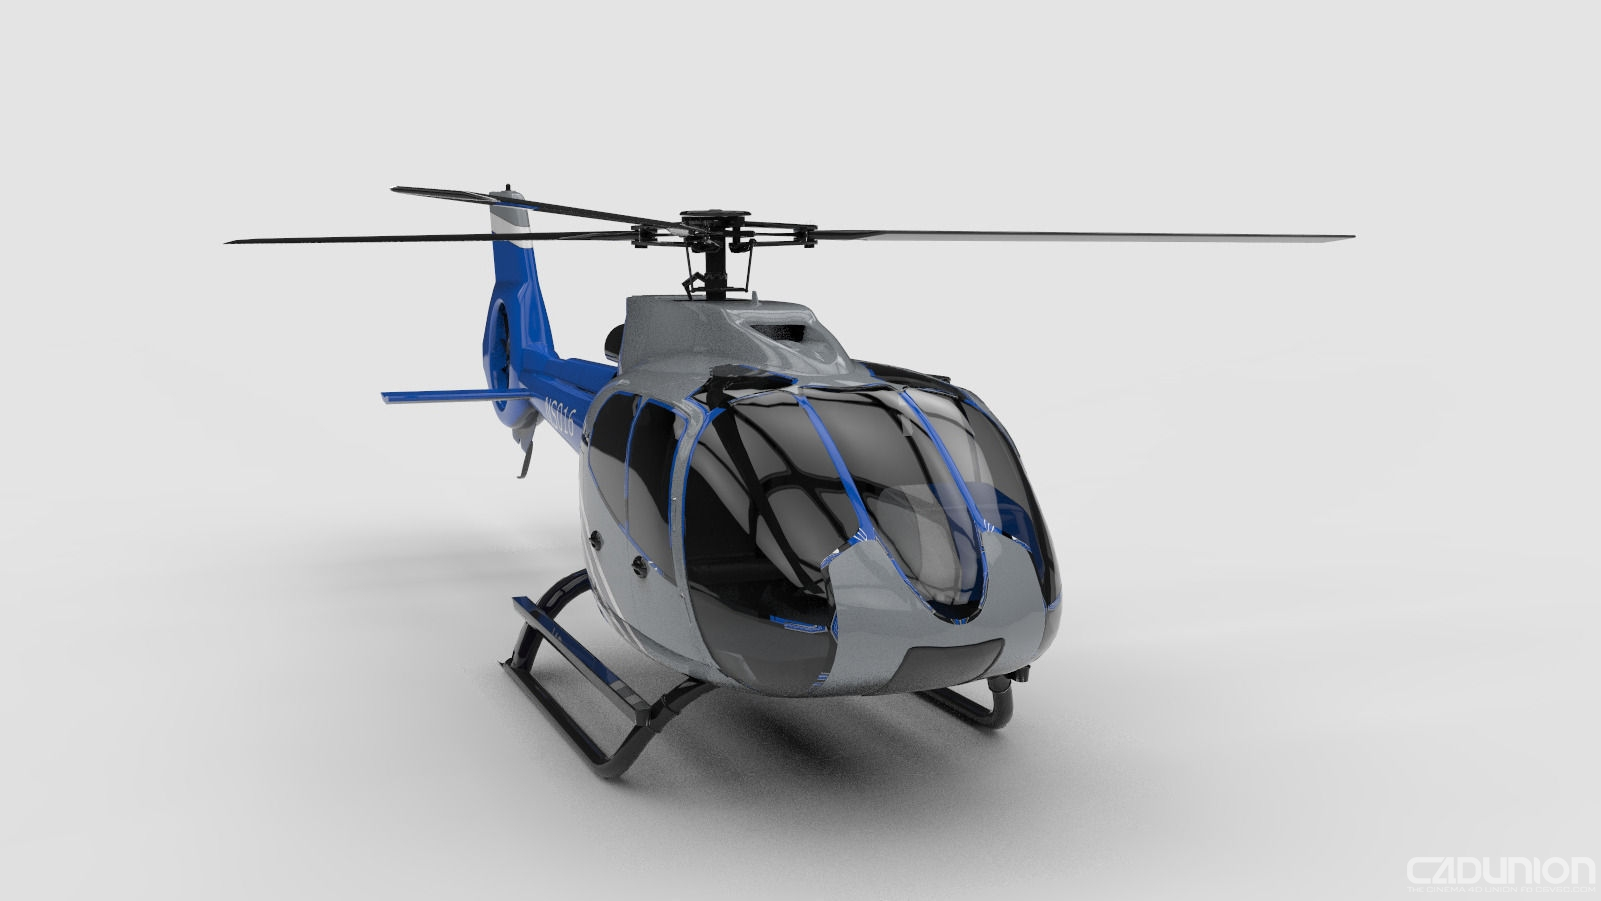 generic-helicopter-3d-model-obj-3ds-c4d2.jpg